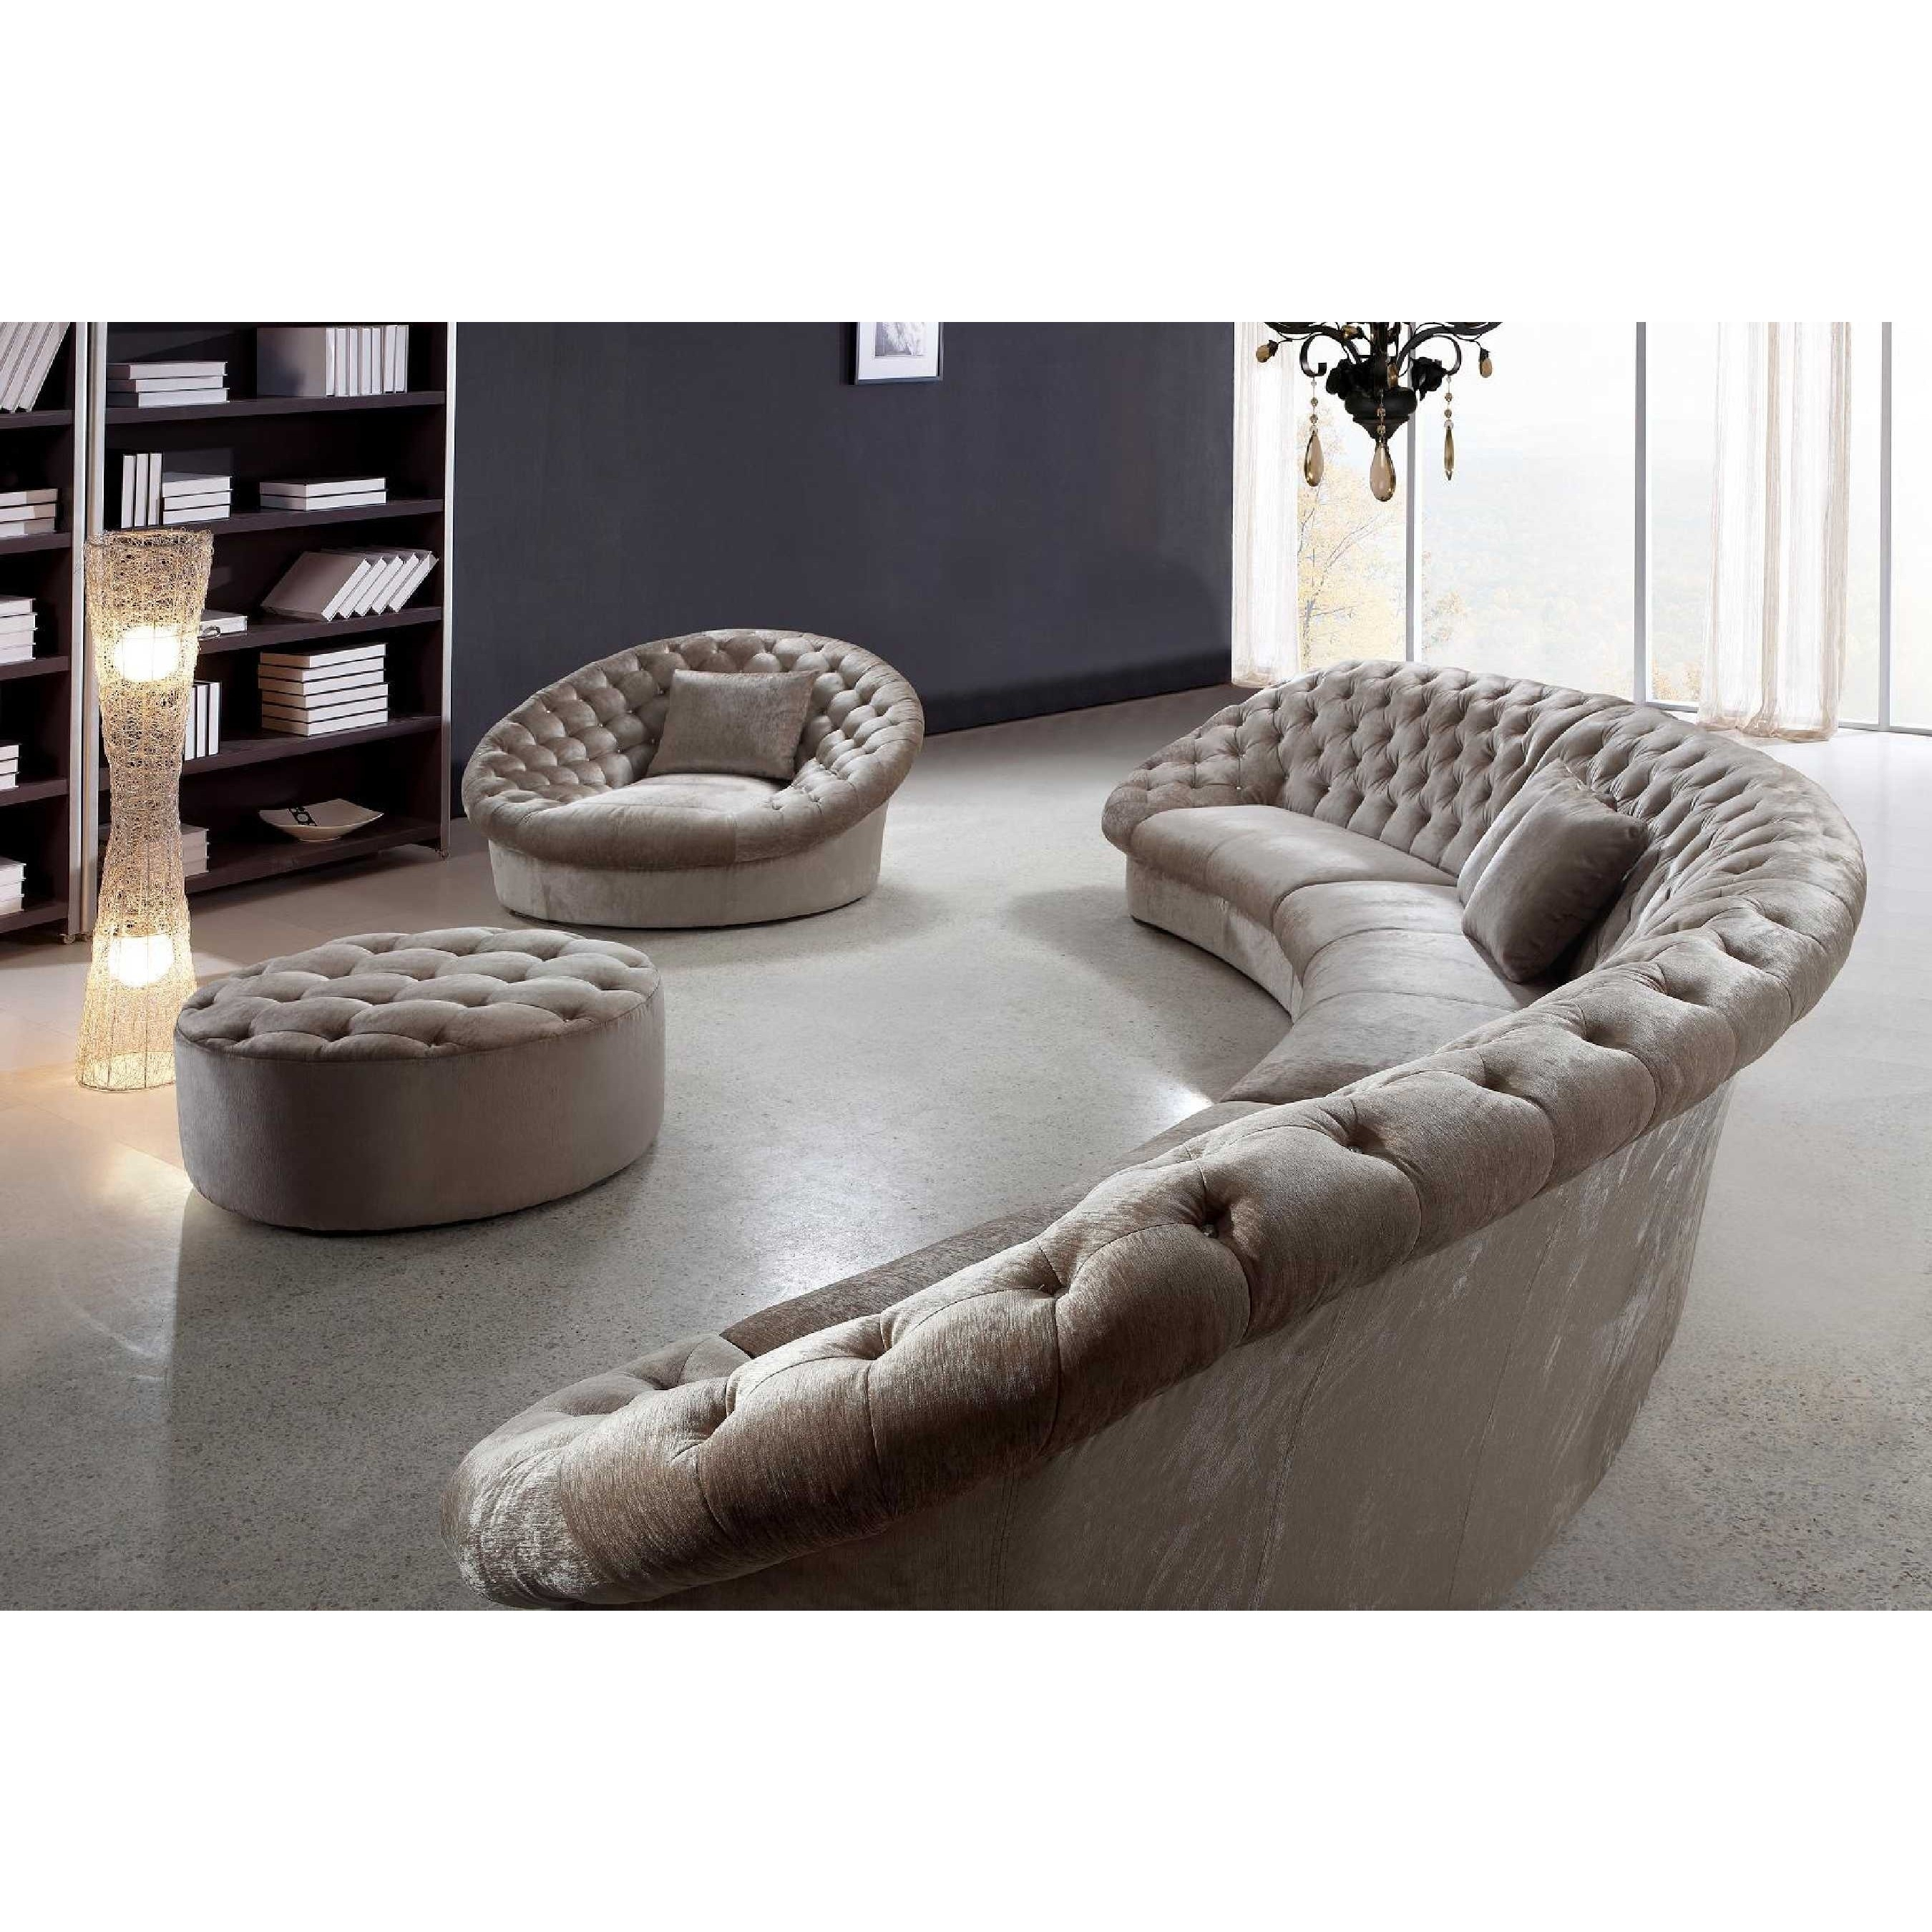 Sofa : Luxury Round Sectional Sofa Bed Curved Semi Circular Sofas Pertaining To Semicircular Sofas (View 6 of 10)